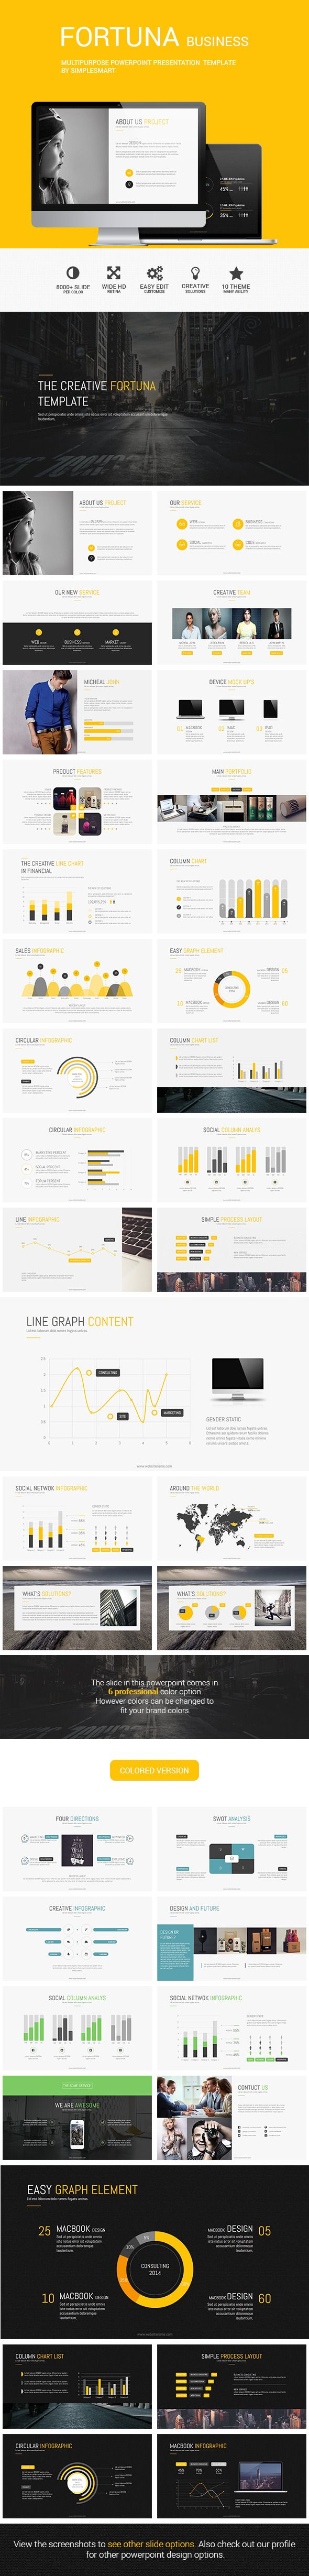 FORTUNA - Multipurpose Presentation Template